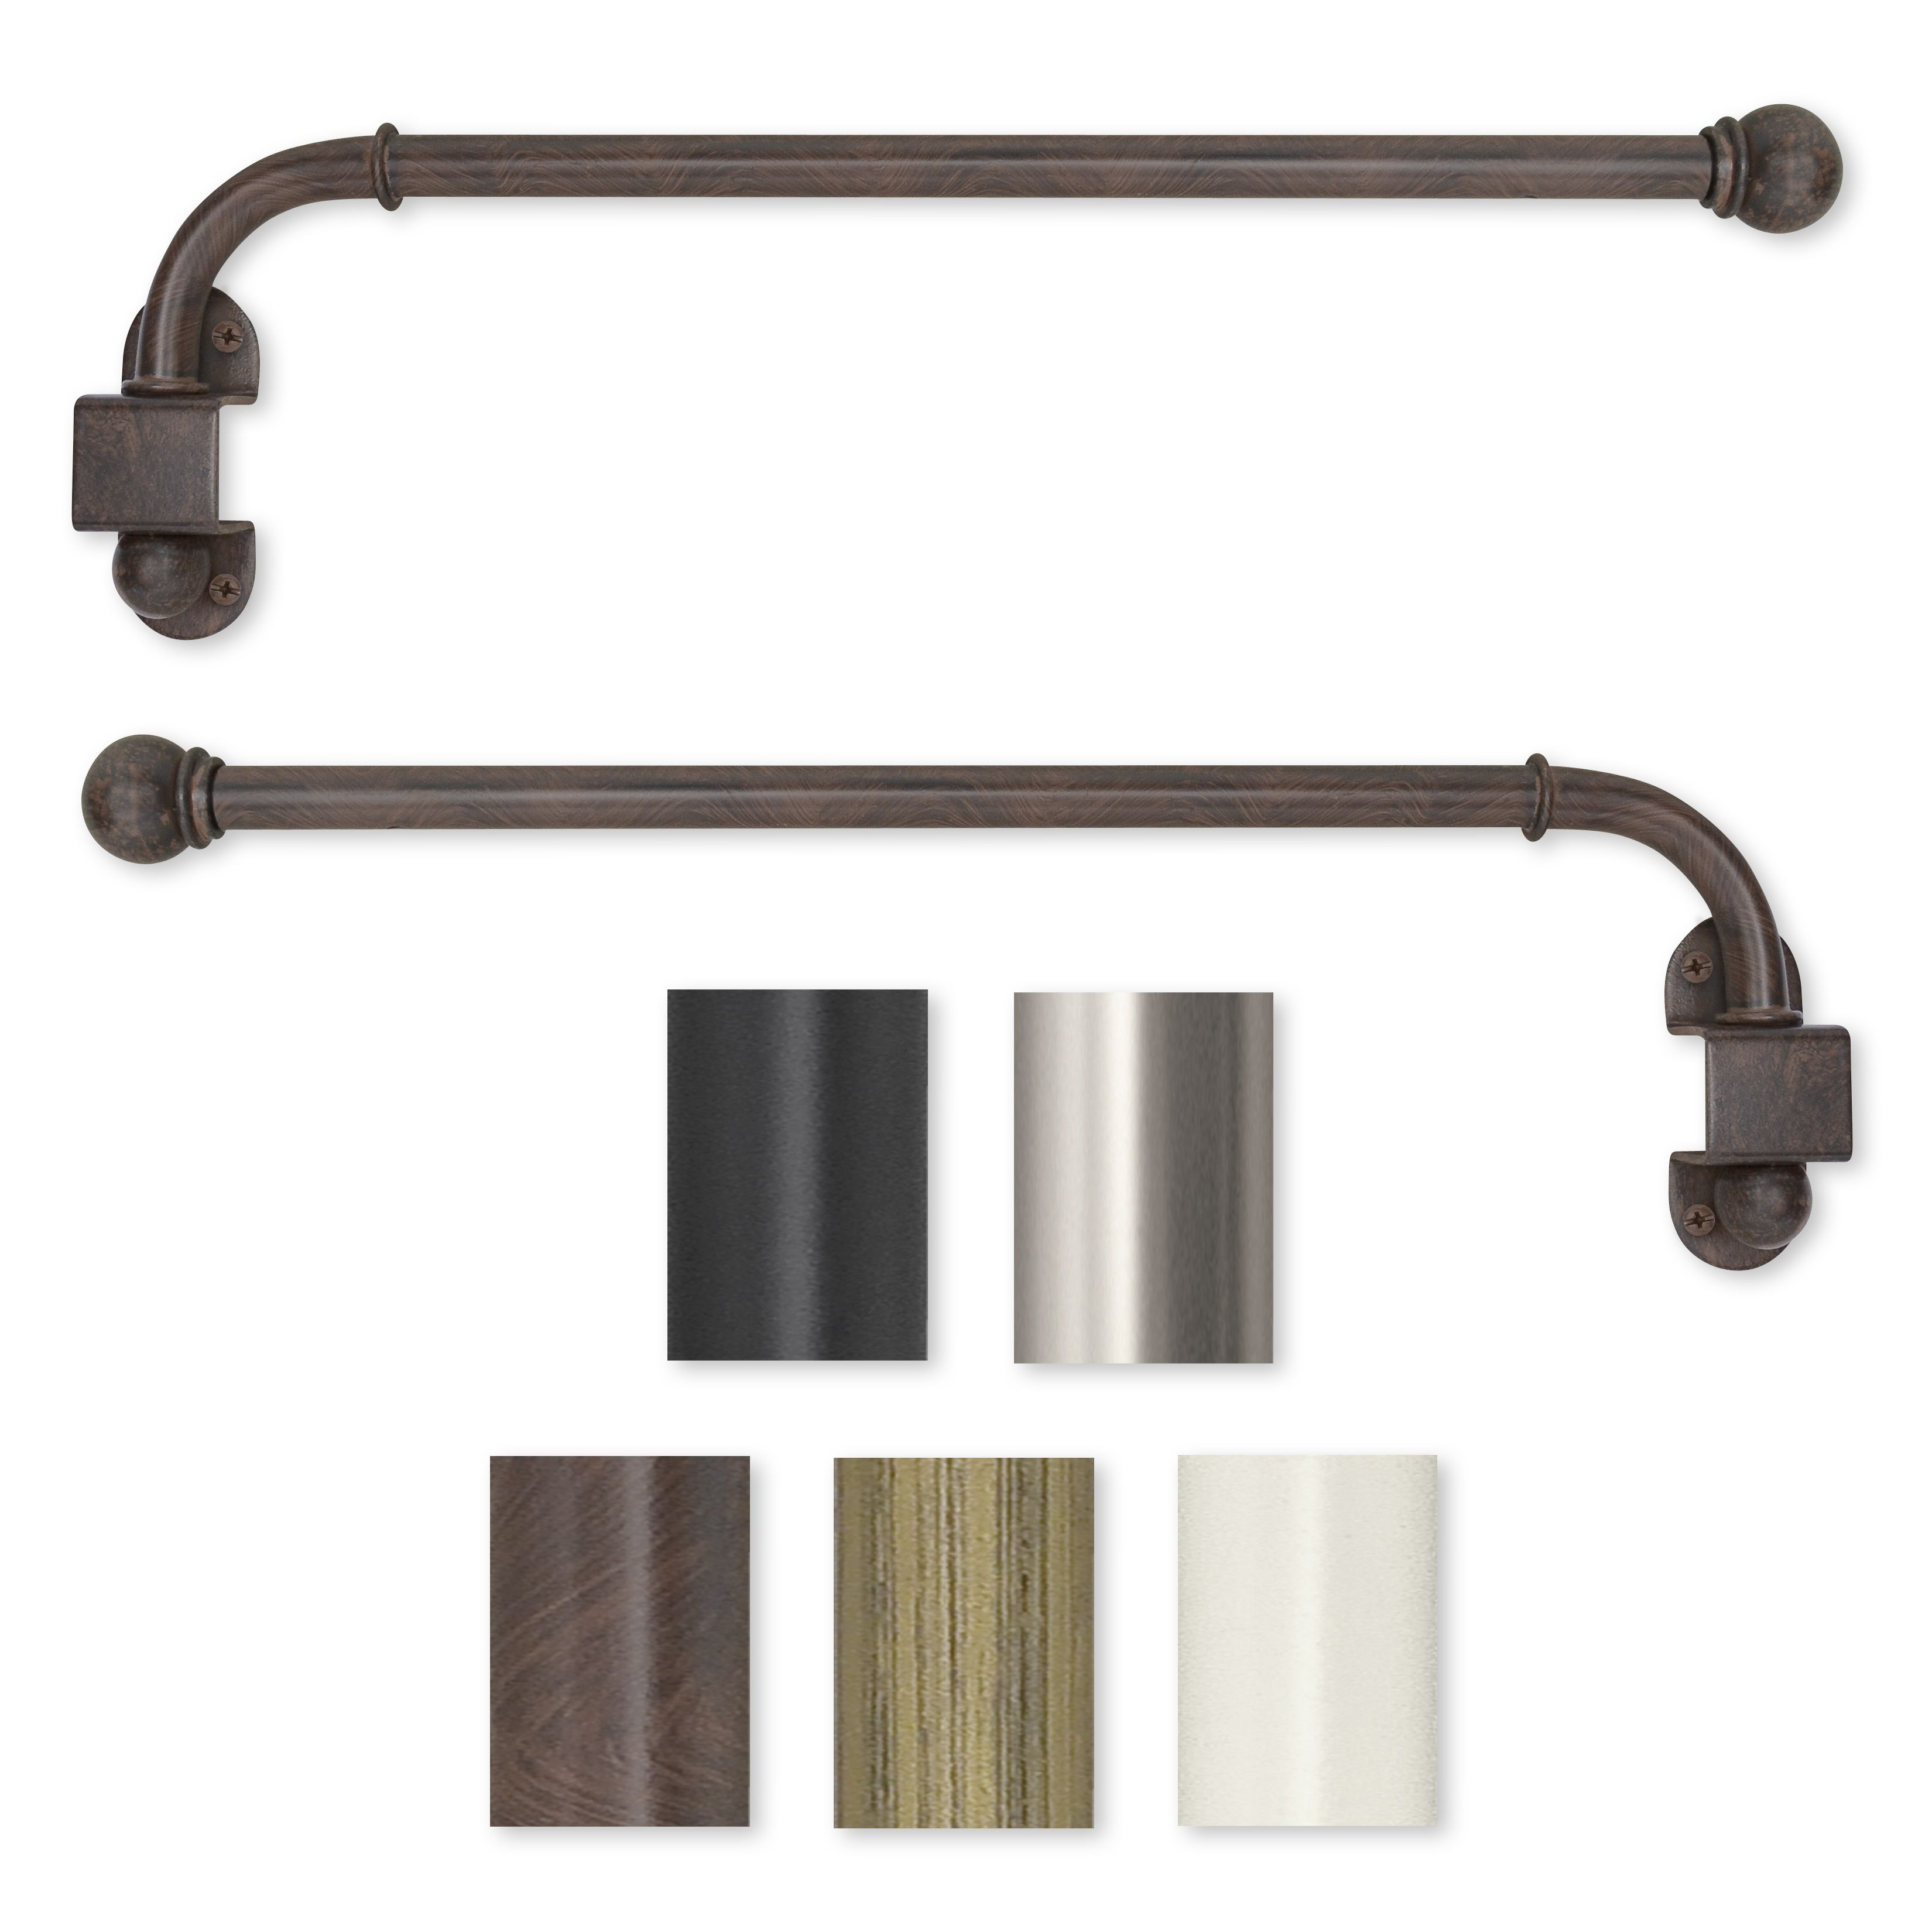 Swing Arm 24 To 38 Inch Adjustable Curtain Rod 38 Swing Arm